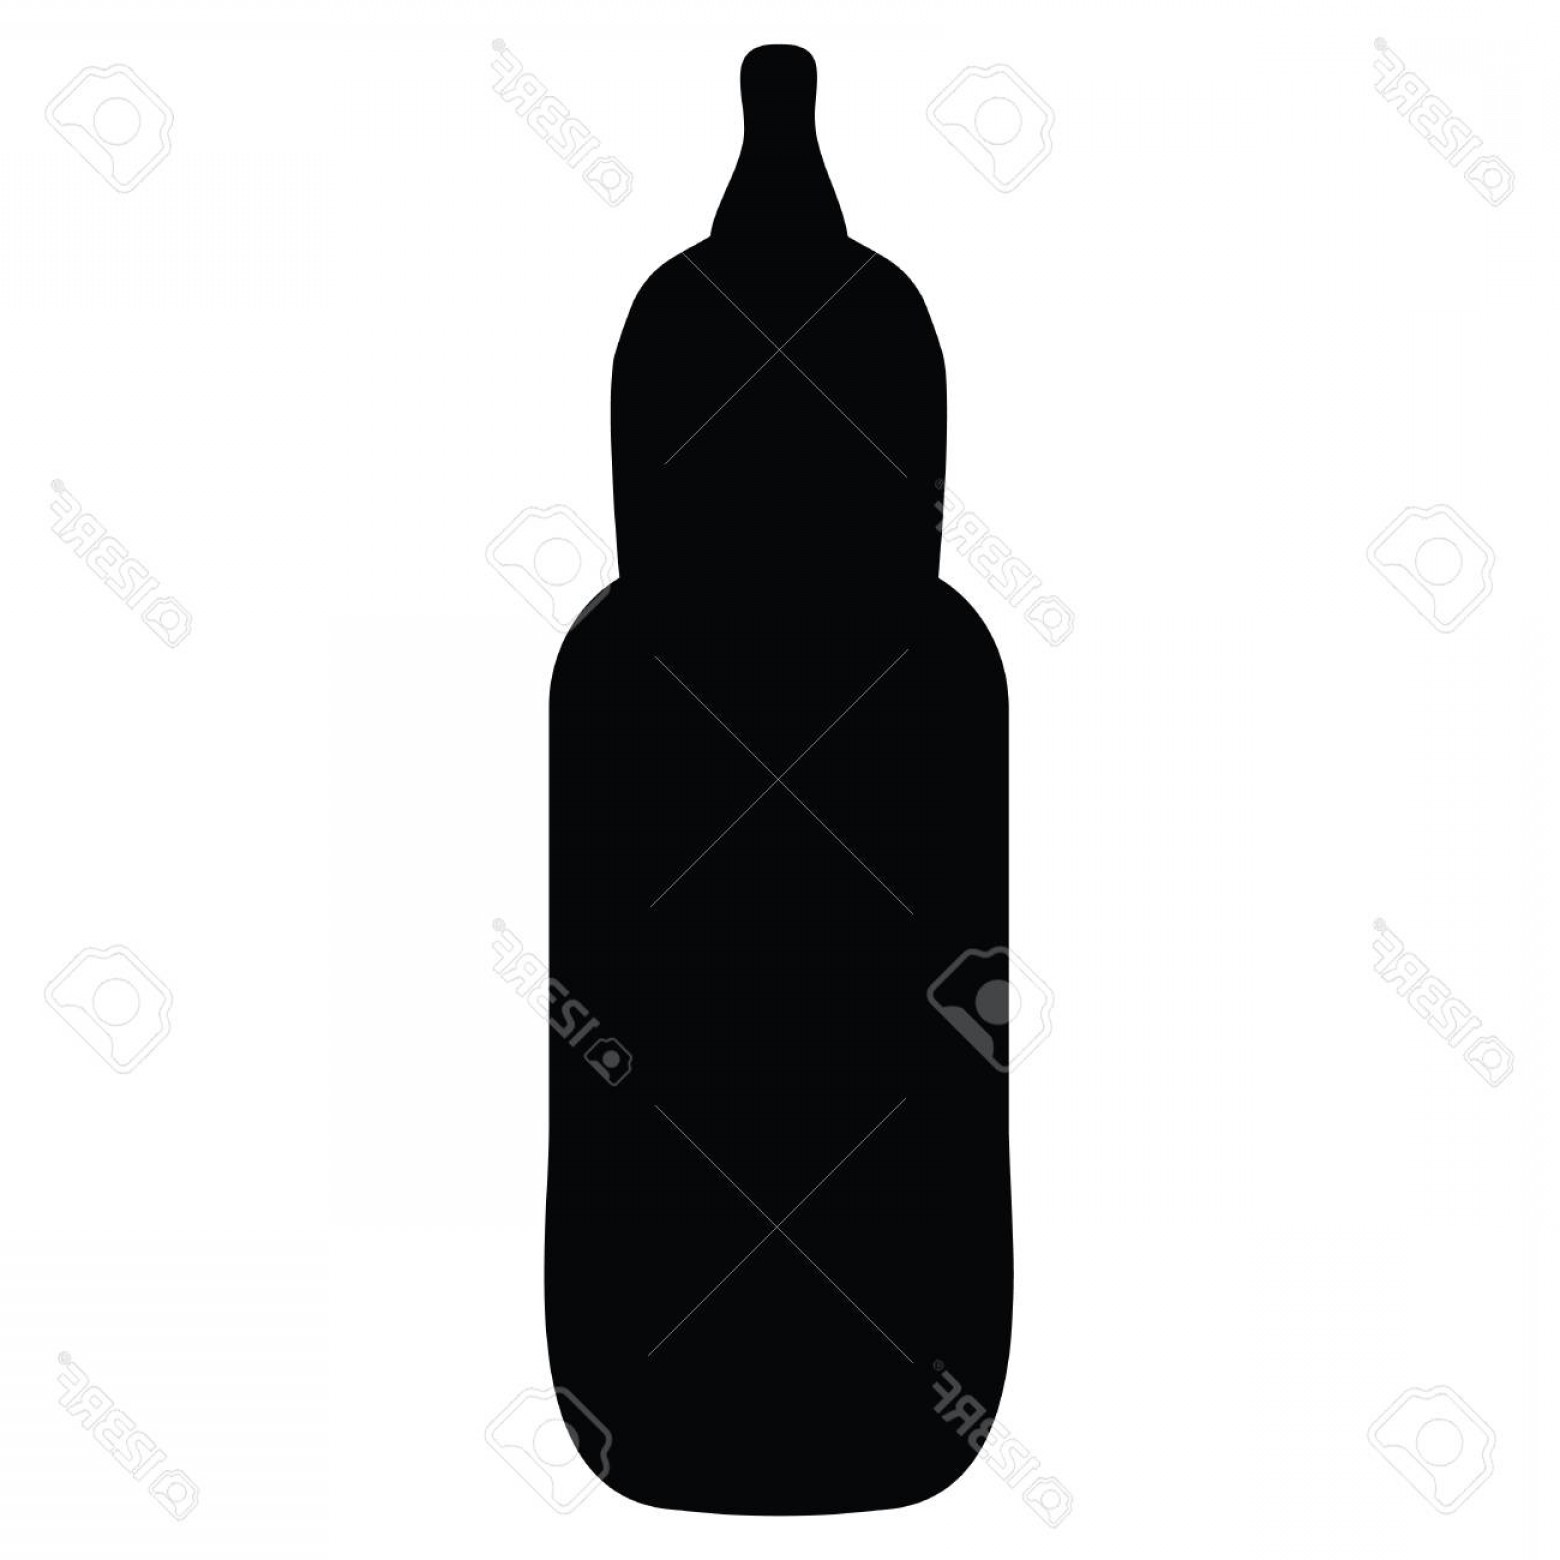 1560x1560 Photostock Vector A Black And White Silhouette Of A Baby Bottle